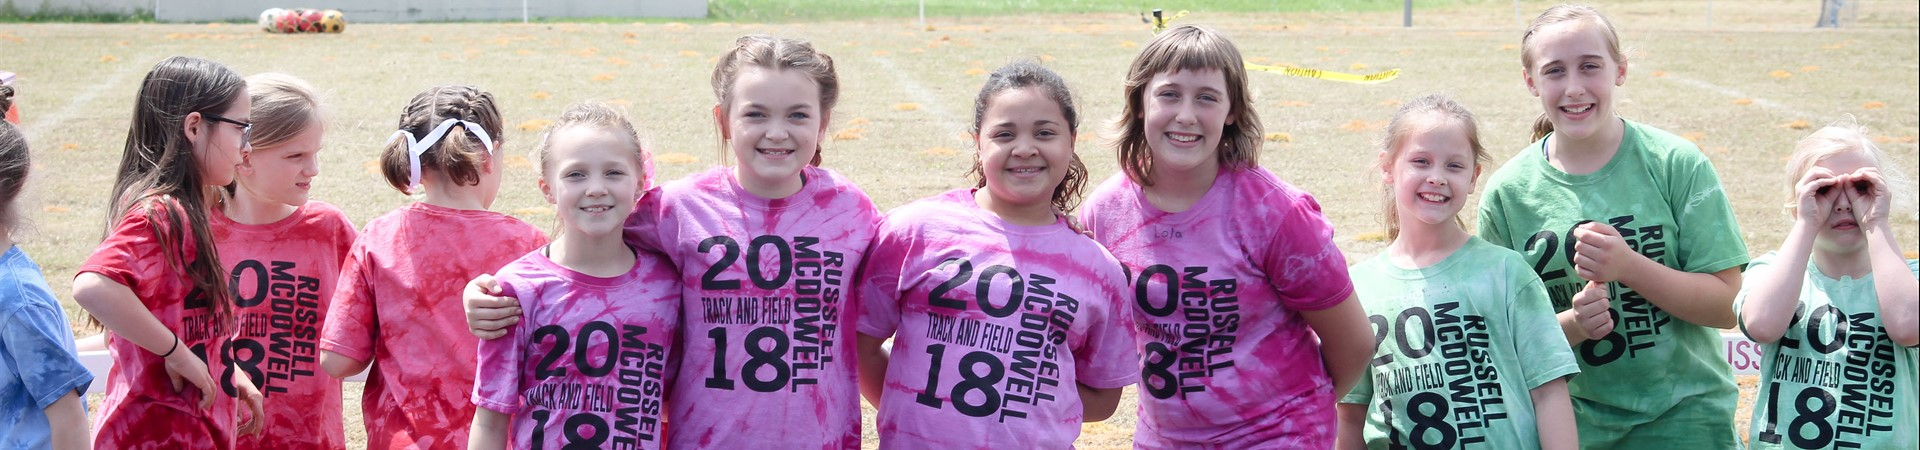 3rd Graders at Track & Field